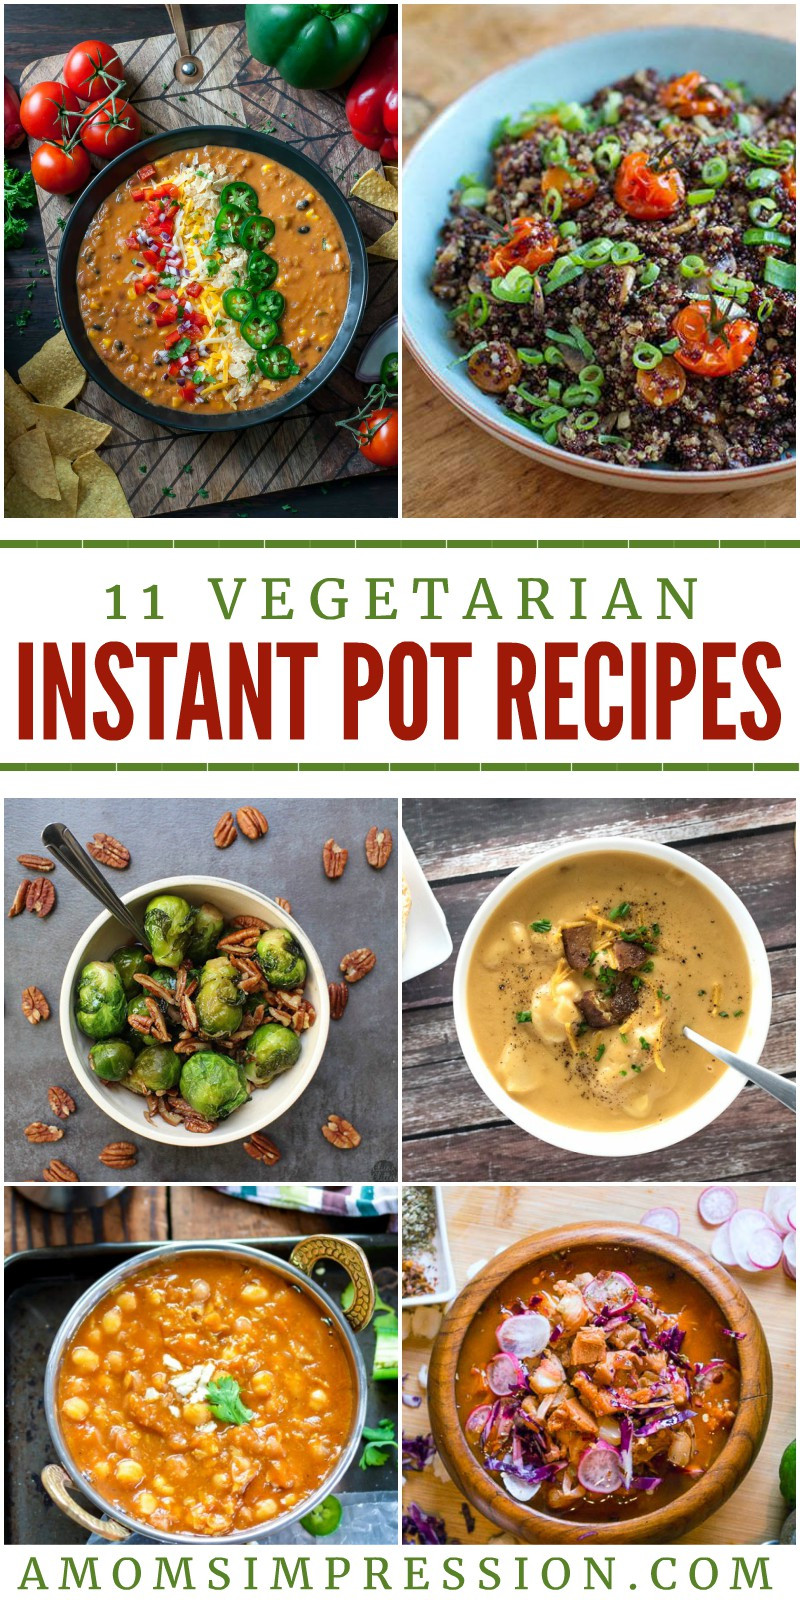 Vegetarian Instant Pot Recipes  11 Exciting Ve arian Instant Pot Recipes Everyone will Love